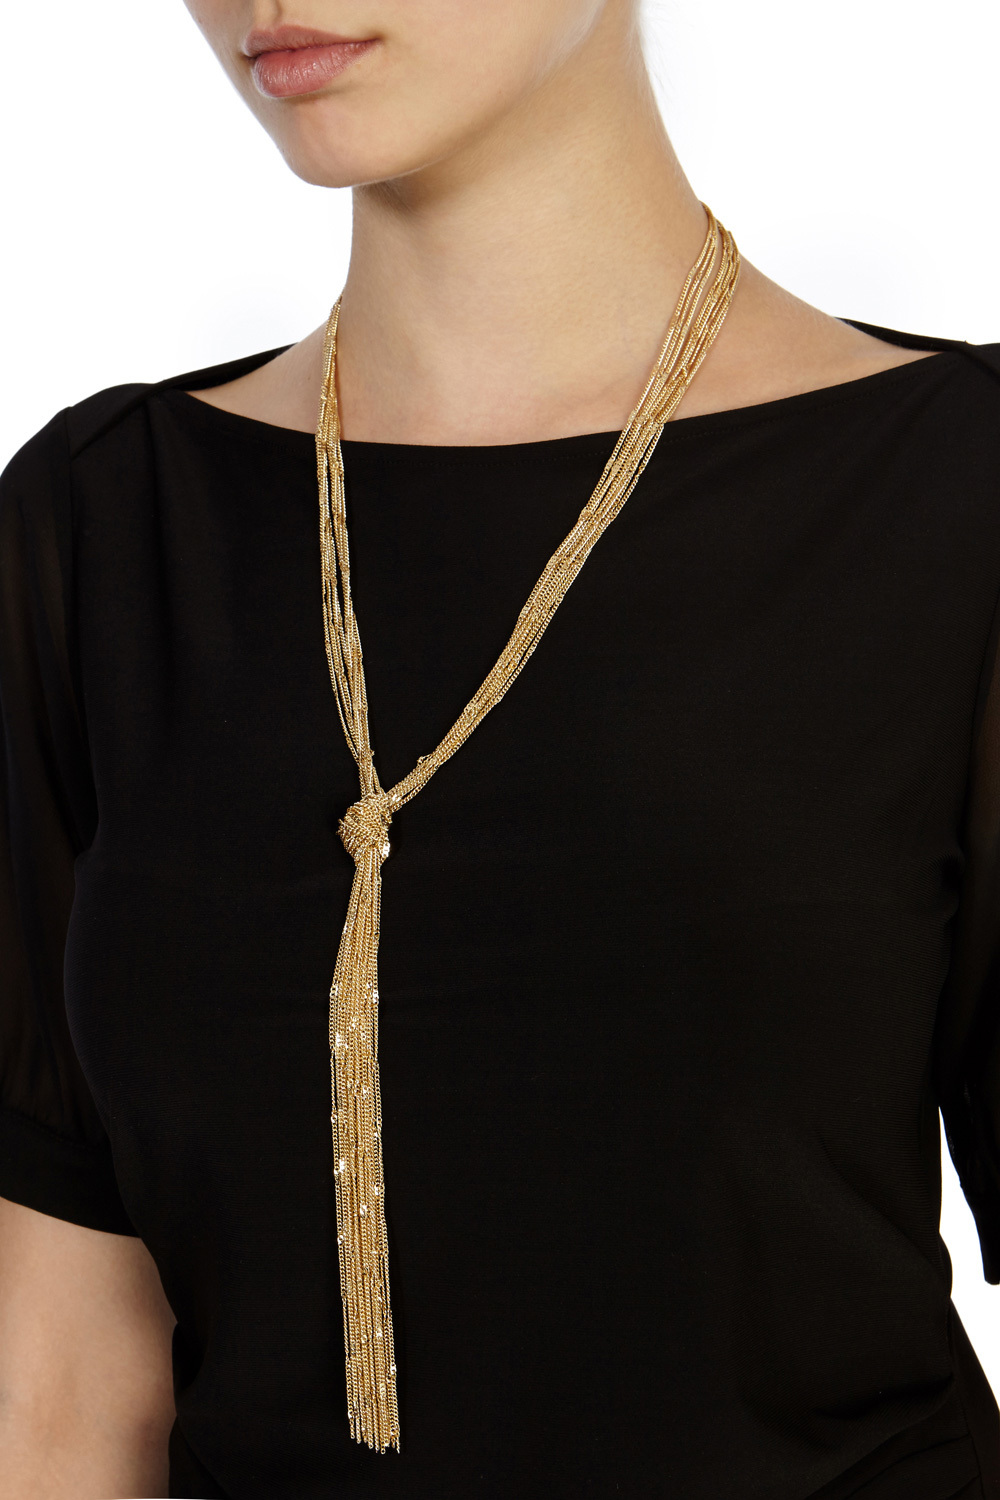 Carmela Longline Knot Necklace - predominant colour: gold; occasions: evening, occasion; style: pendant; length: long; size: standard; material: plastic/rubber; finish: metallic; season: s/s 2016; wardrobe: event